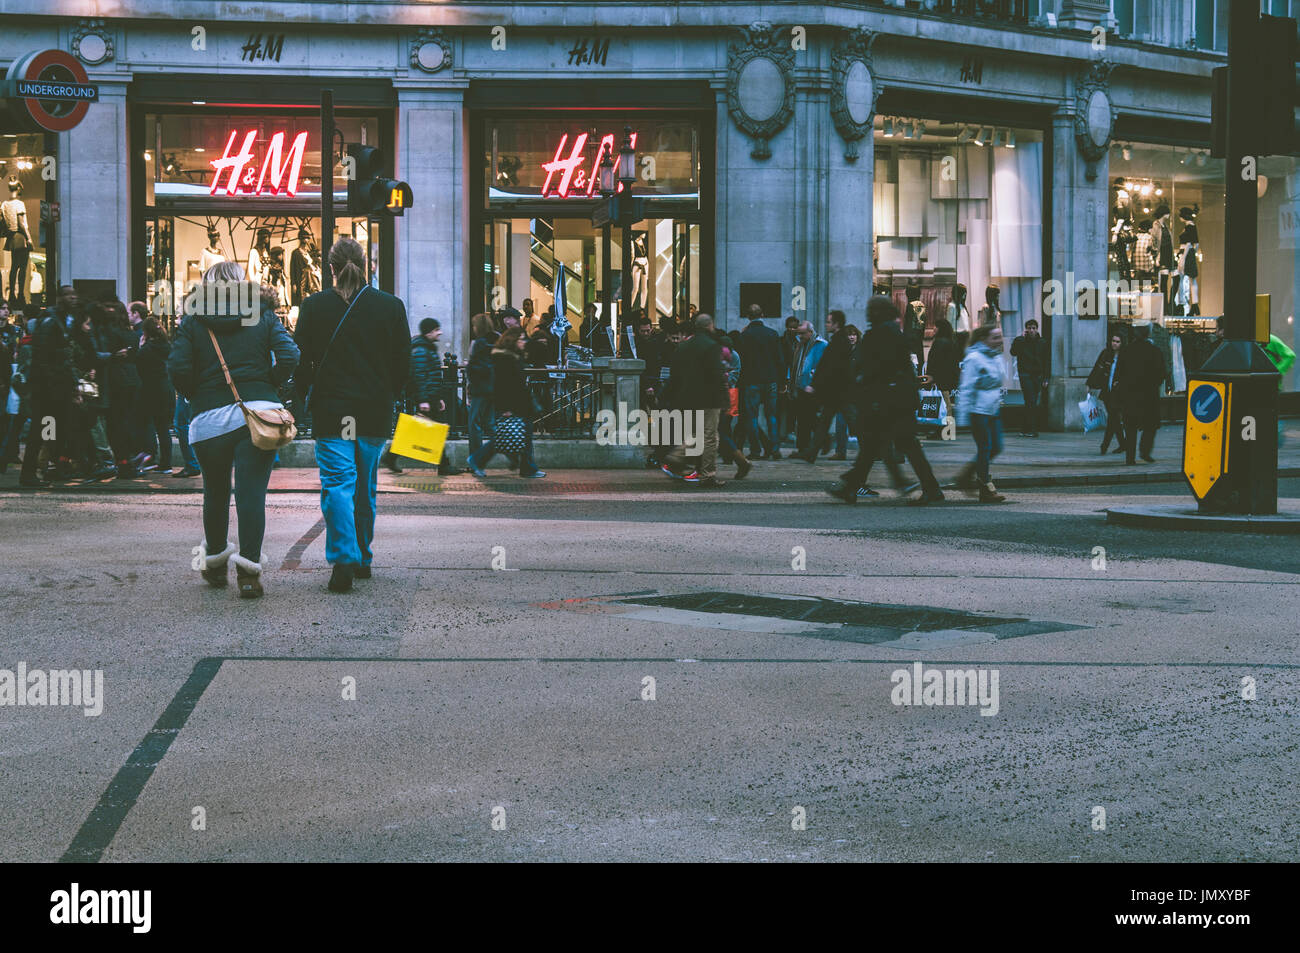 Shoppers walk past H&M shop located on Oxford street, London. - Stock Image